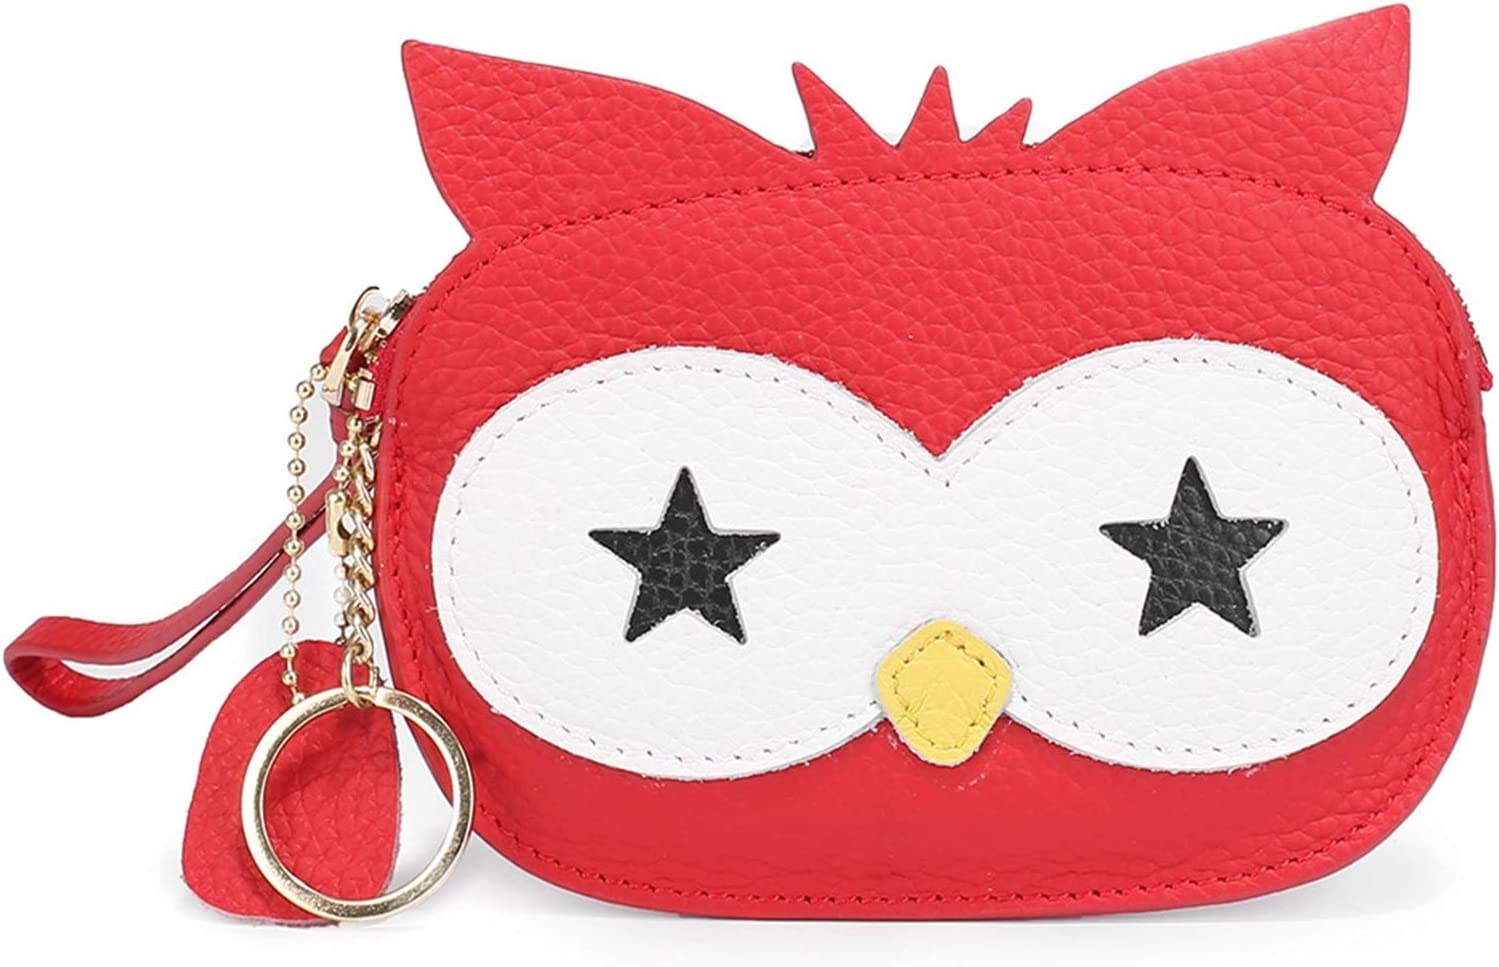 LIUMANG Coin Purse Ladies Leather Change Wallet Coin Pouch Key Bag with Key Chain Charming Lovely Design Owl Shape Coin Purse Mini Coin Purse (Color : Red, Size : 14.5x11.5x1cm)